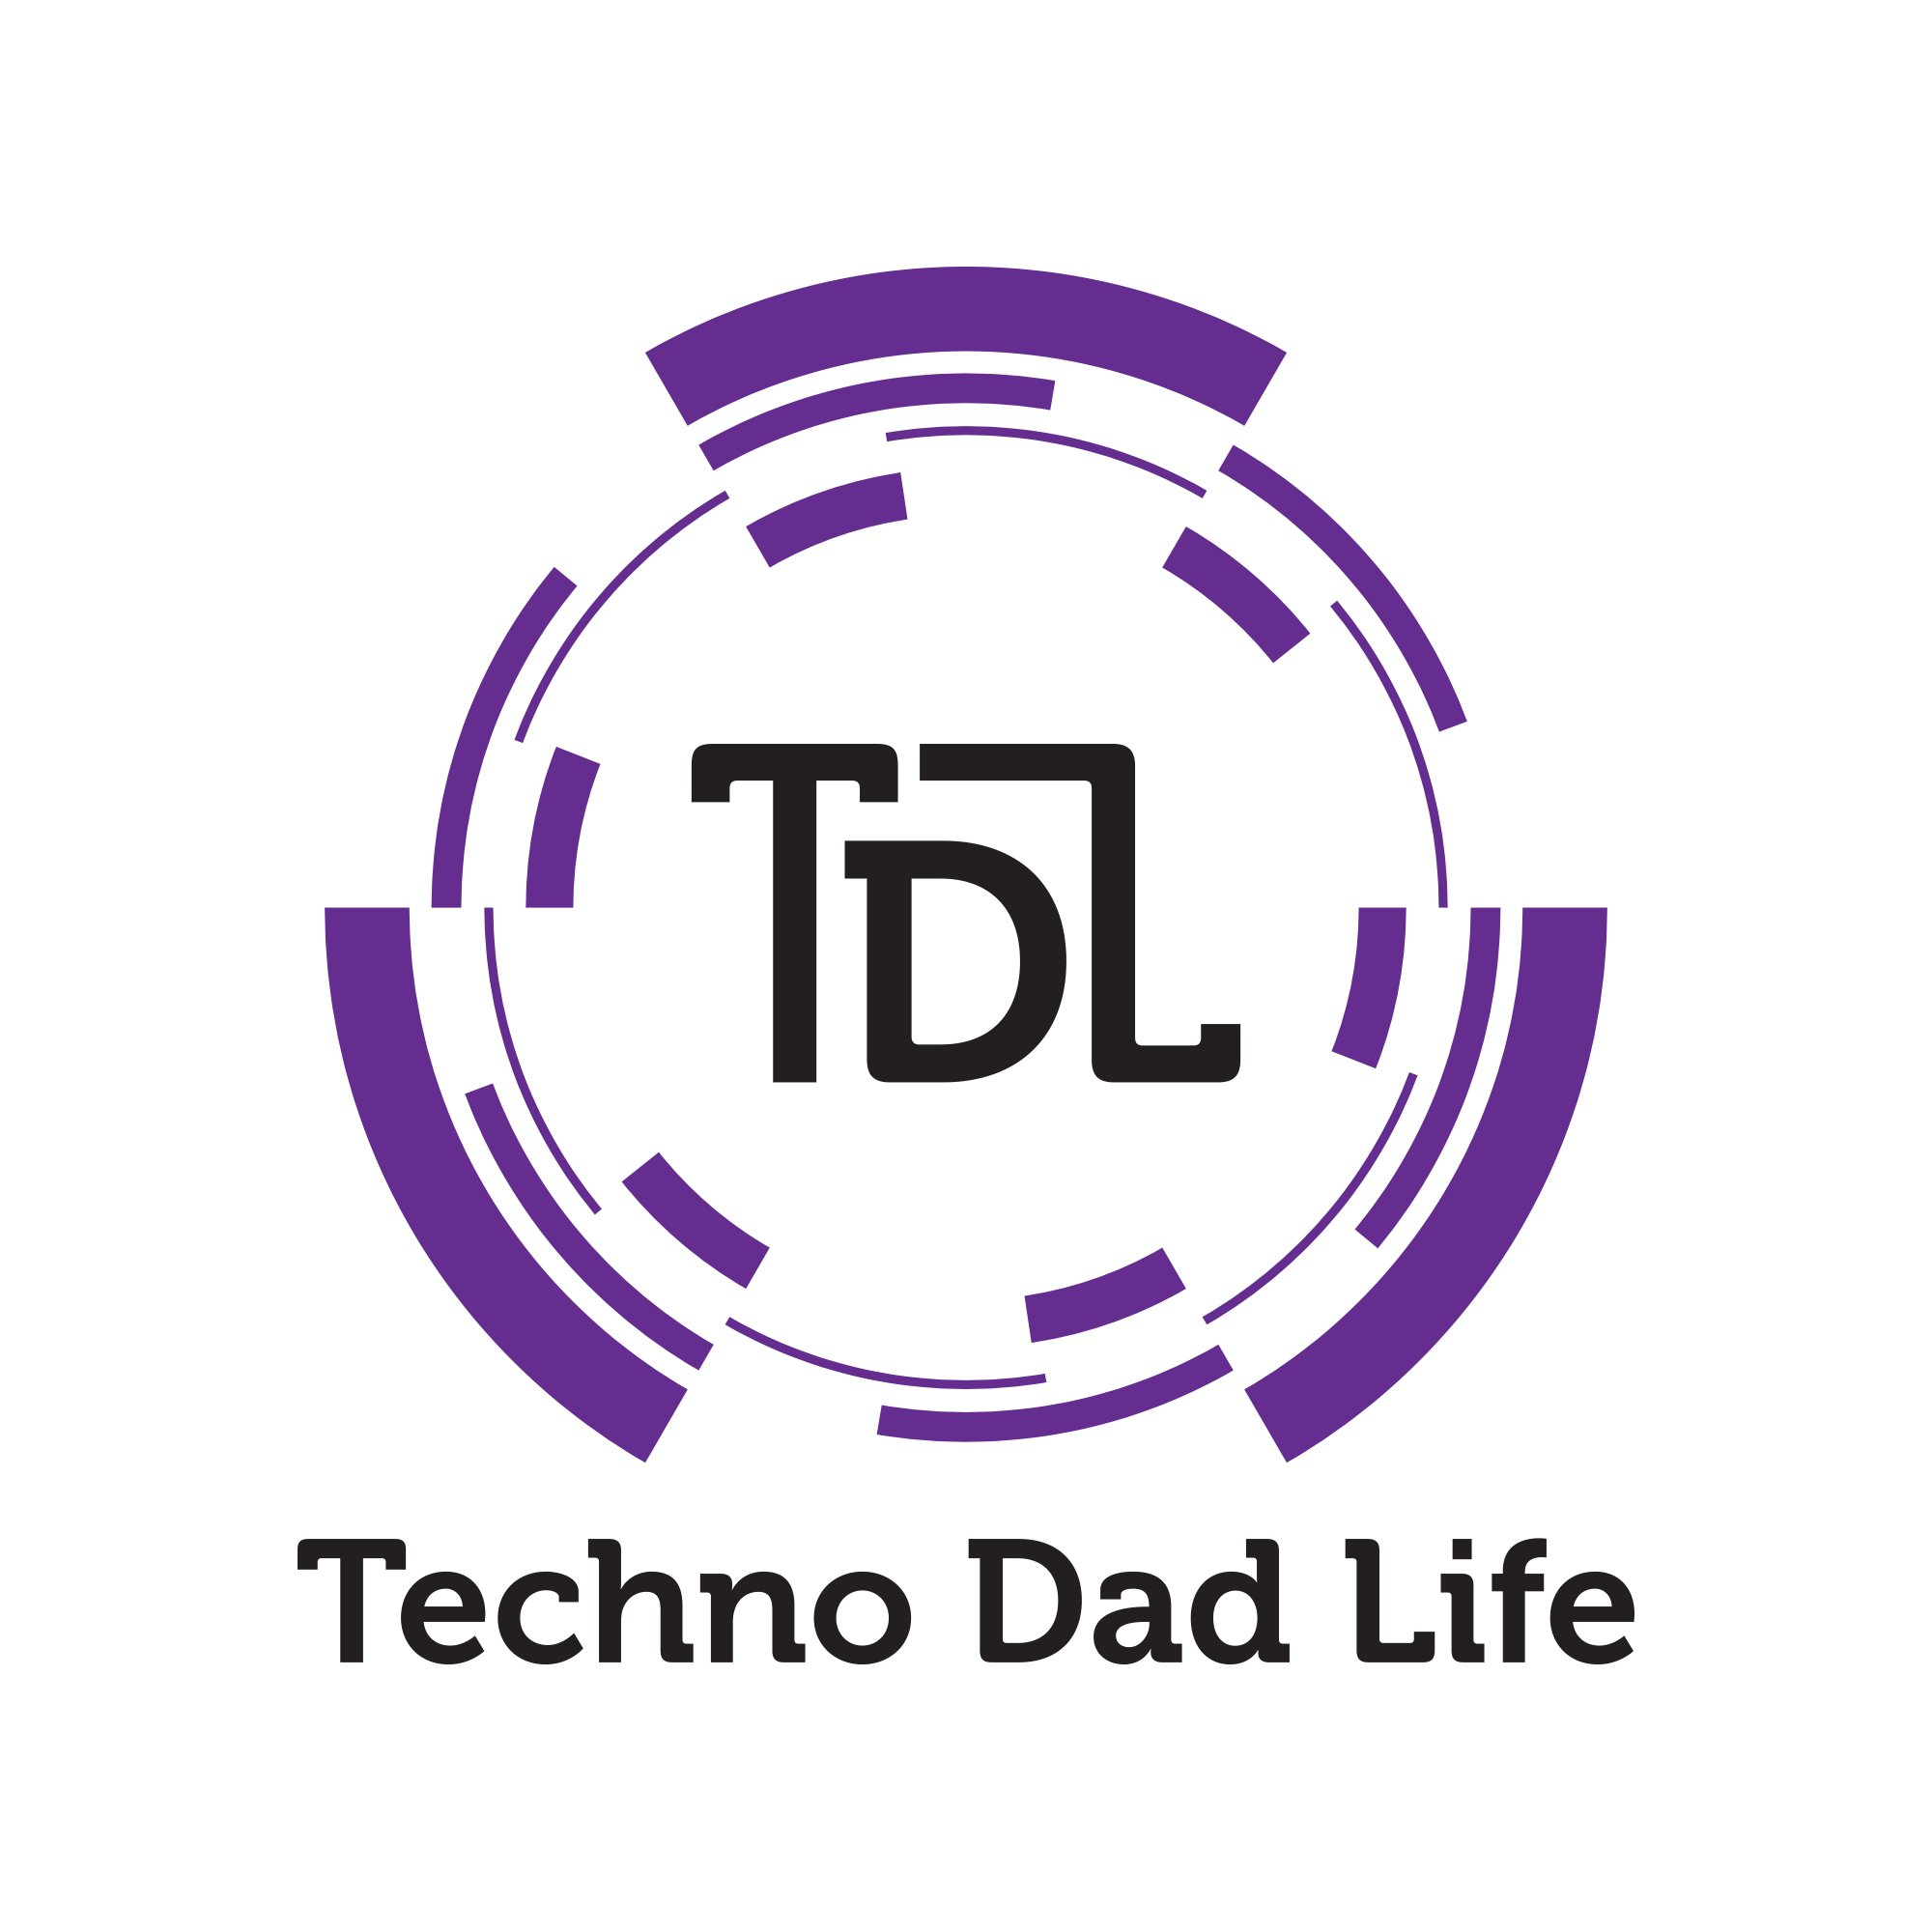 TechnoDadLife (@TechnoDadLife) | Twitter